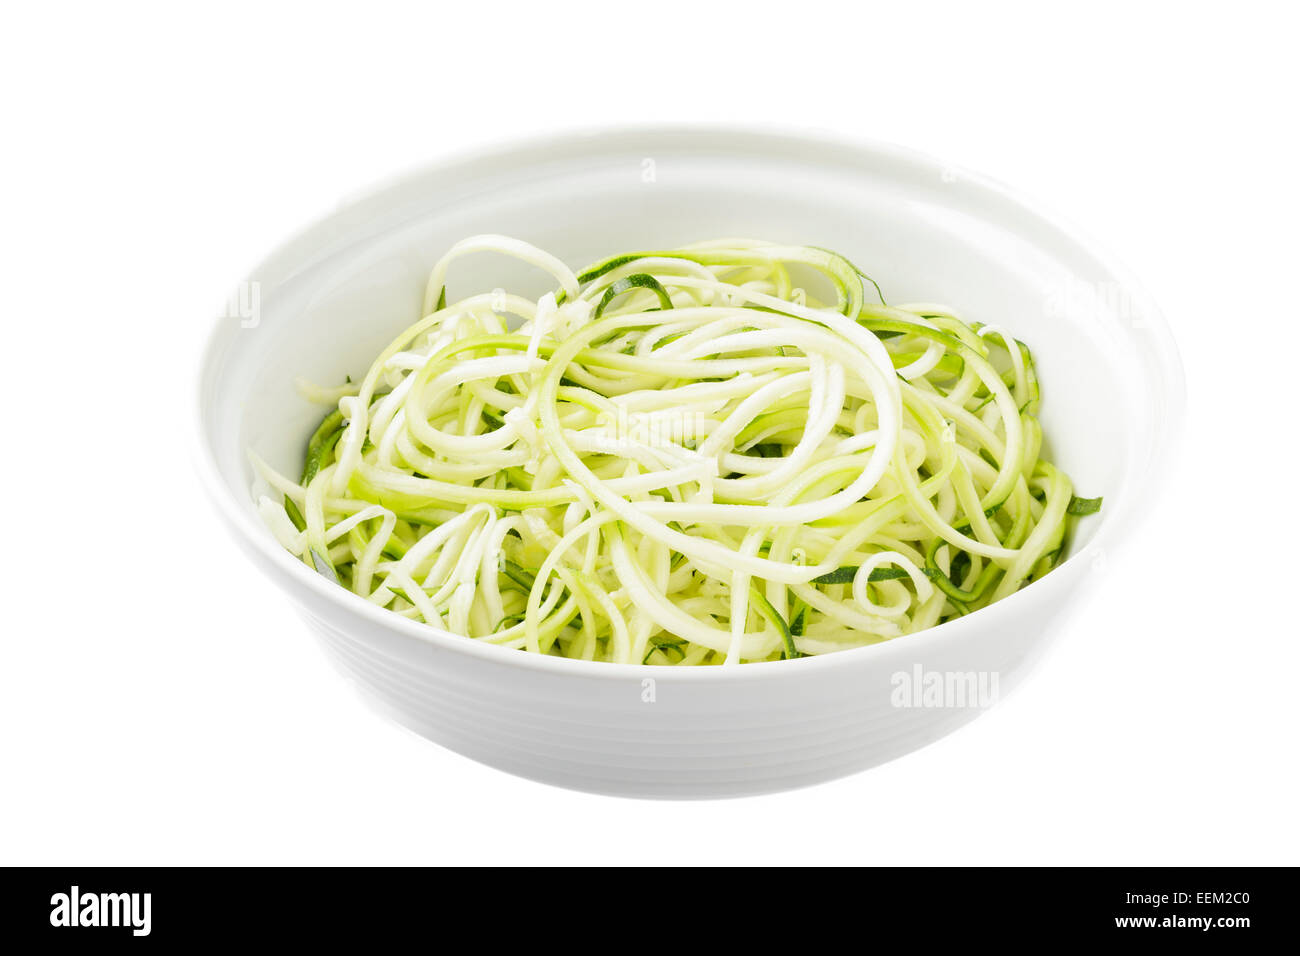 zoodles or zucchini (courgette) noodles - Stock Image